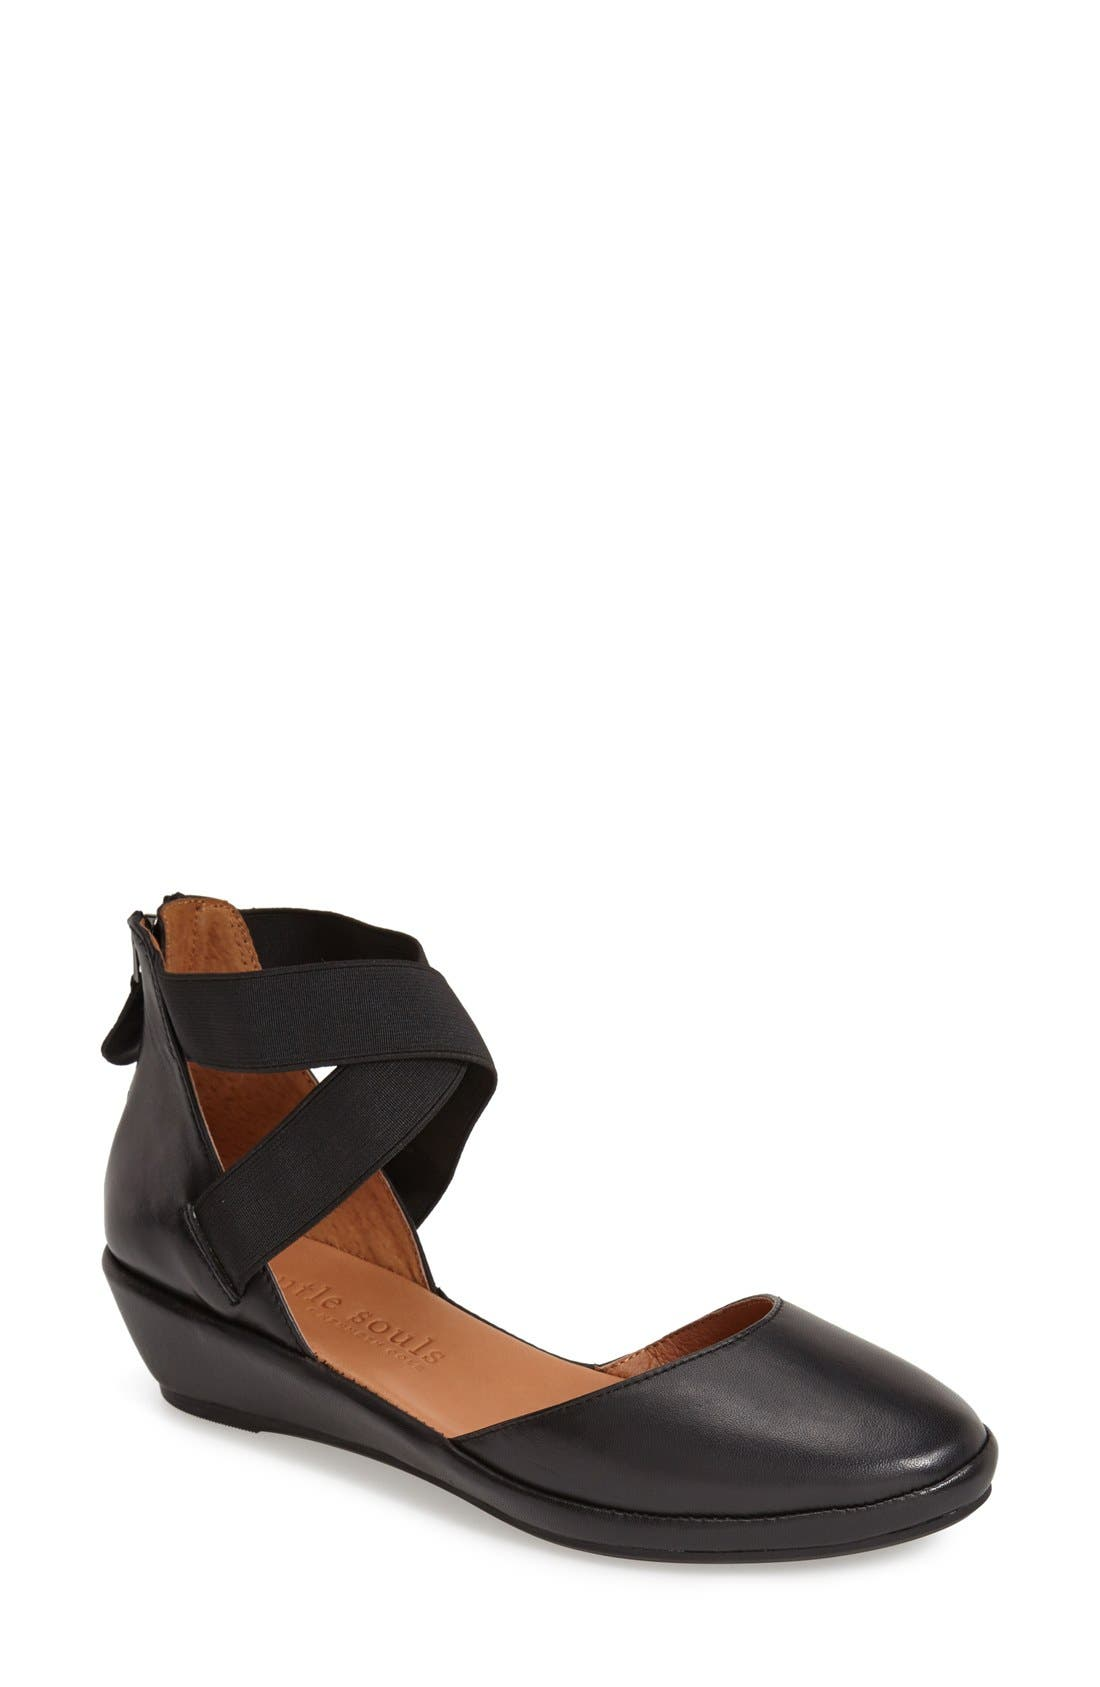 GENTLE SOULS By Kenneth Cole 'Noa' Elastic Strap D'Orsay Sandal in Black